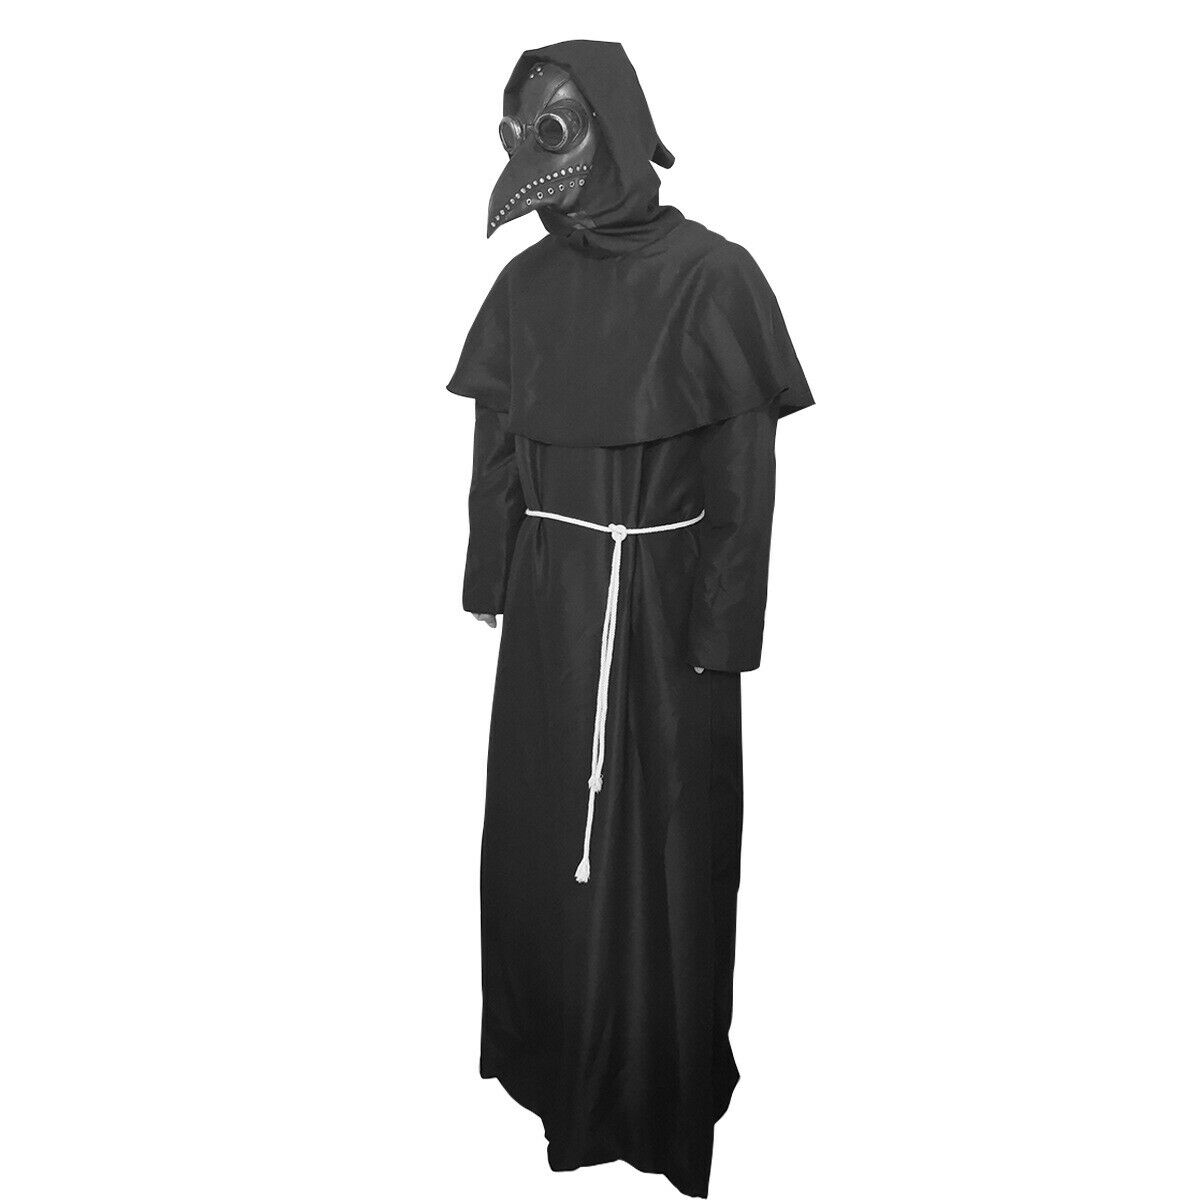 Plague Doctor Steampunk Hooded Robe Cloak Cape w/Bird Mask Cosplay Costume Props Accessories